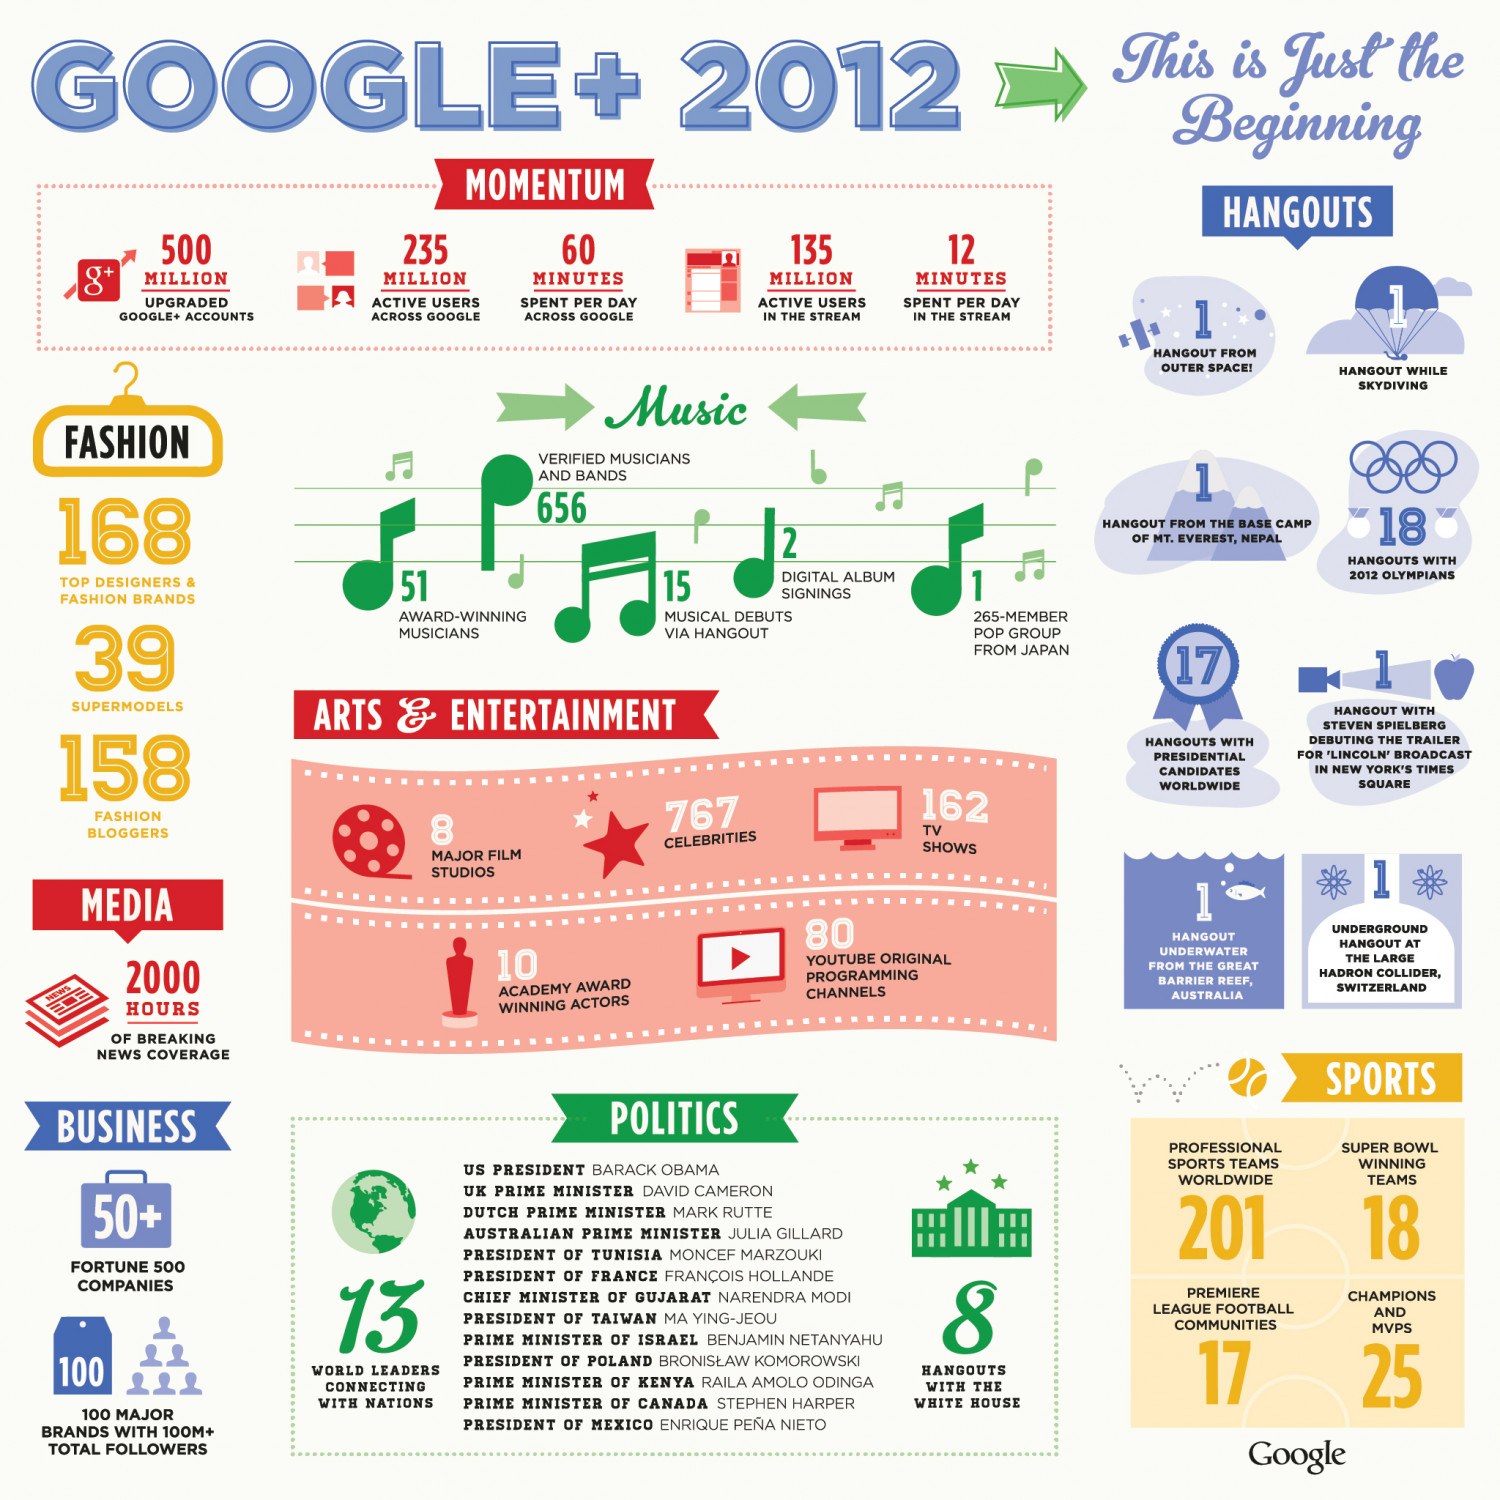 Google Plus 2012: Only the Beginning Infographic